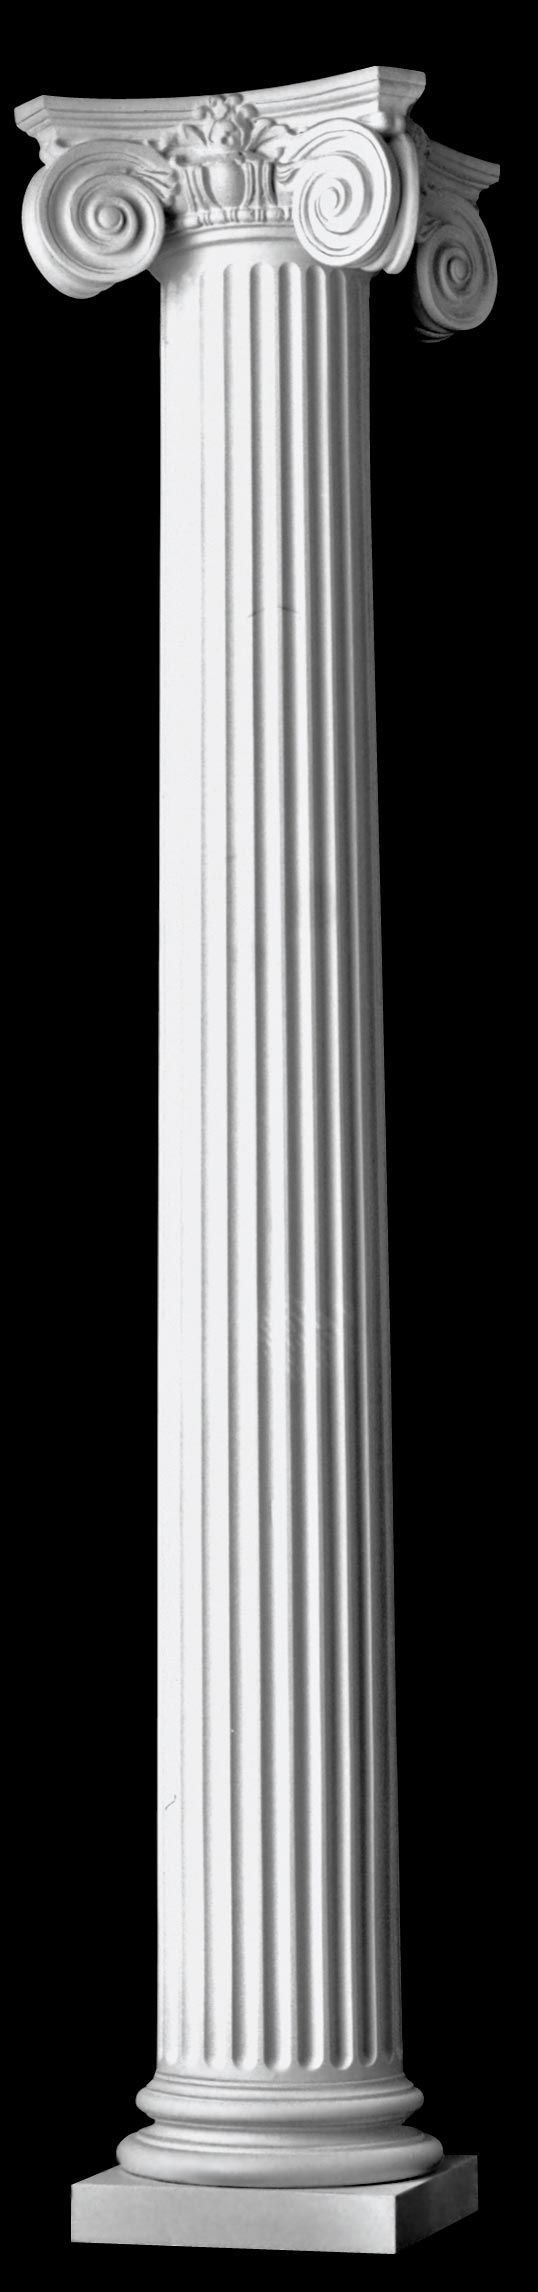 25 best ideas about wood columns on pinterest front for 10 fiberglass columns